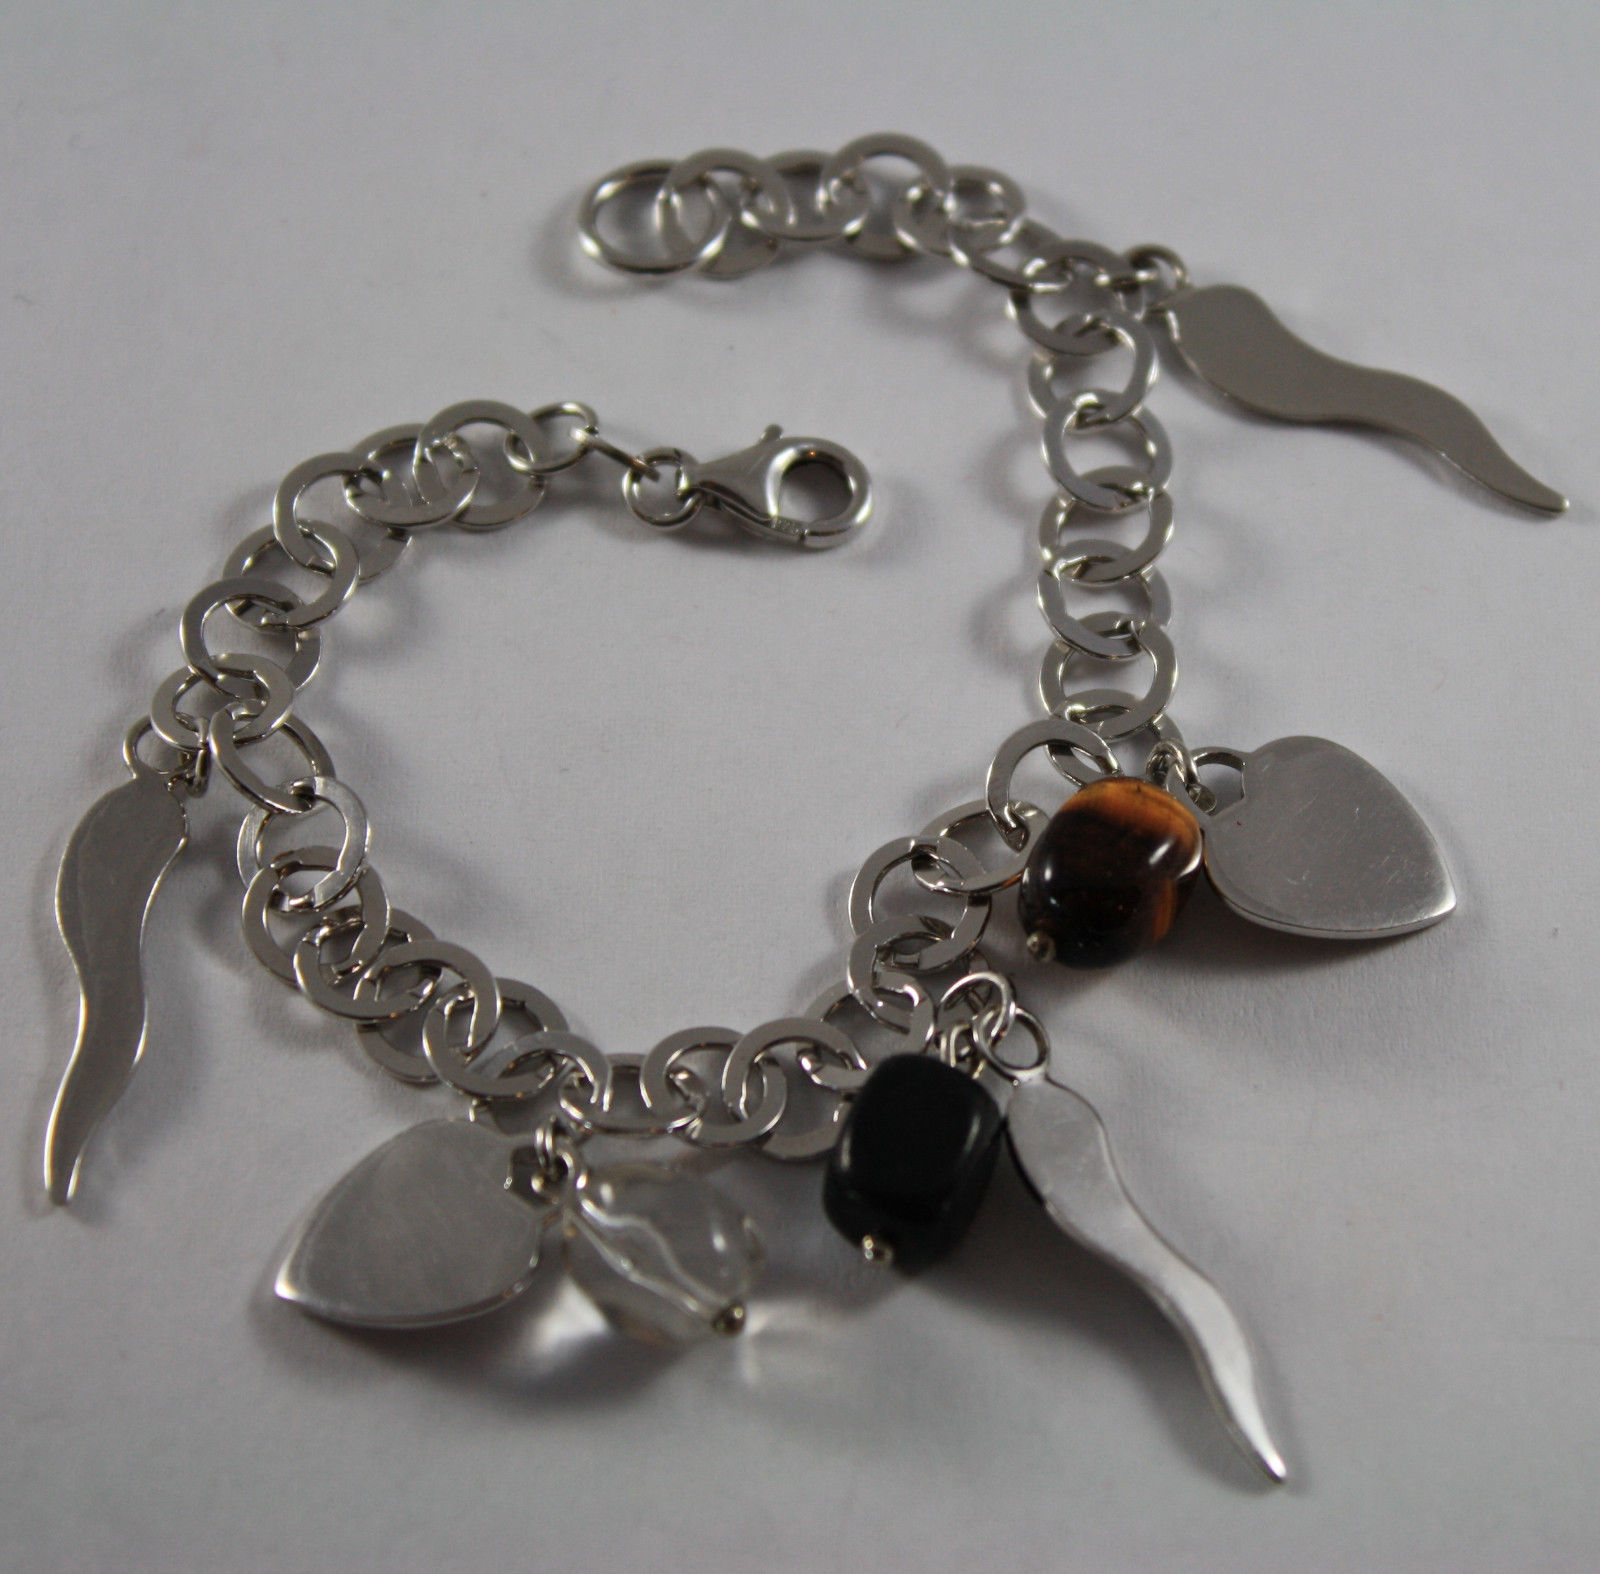 .925 RHODIUM SILVER BRACELET WITH TIGER'S EYE, BLACK ONYX , CRISTAL AND CHARMS